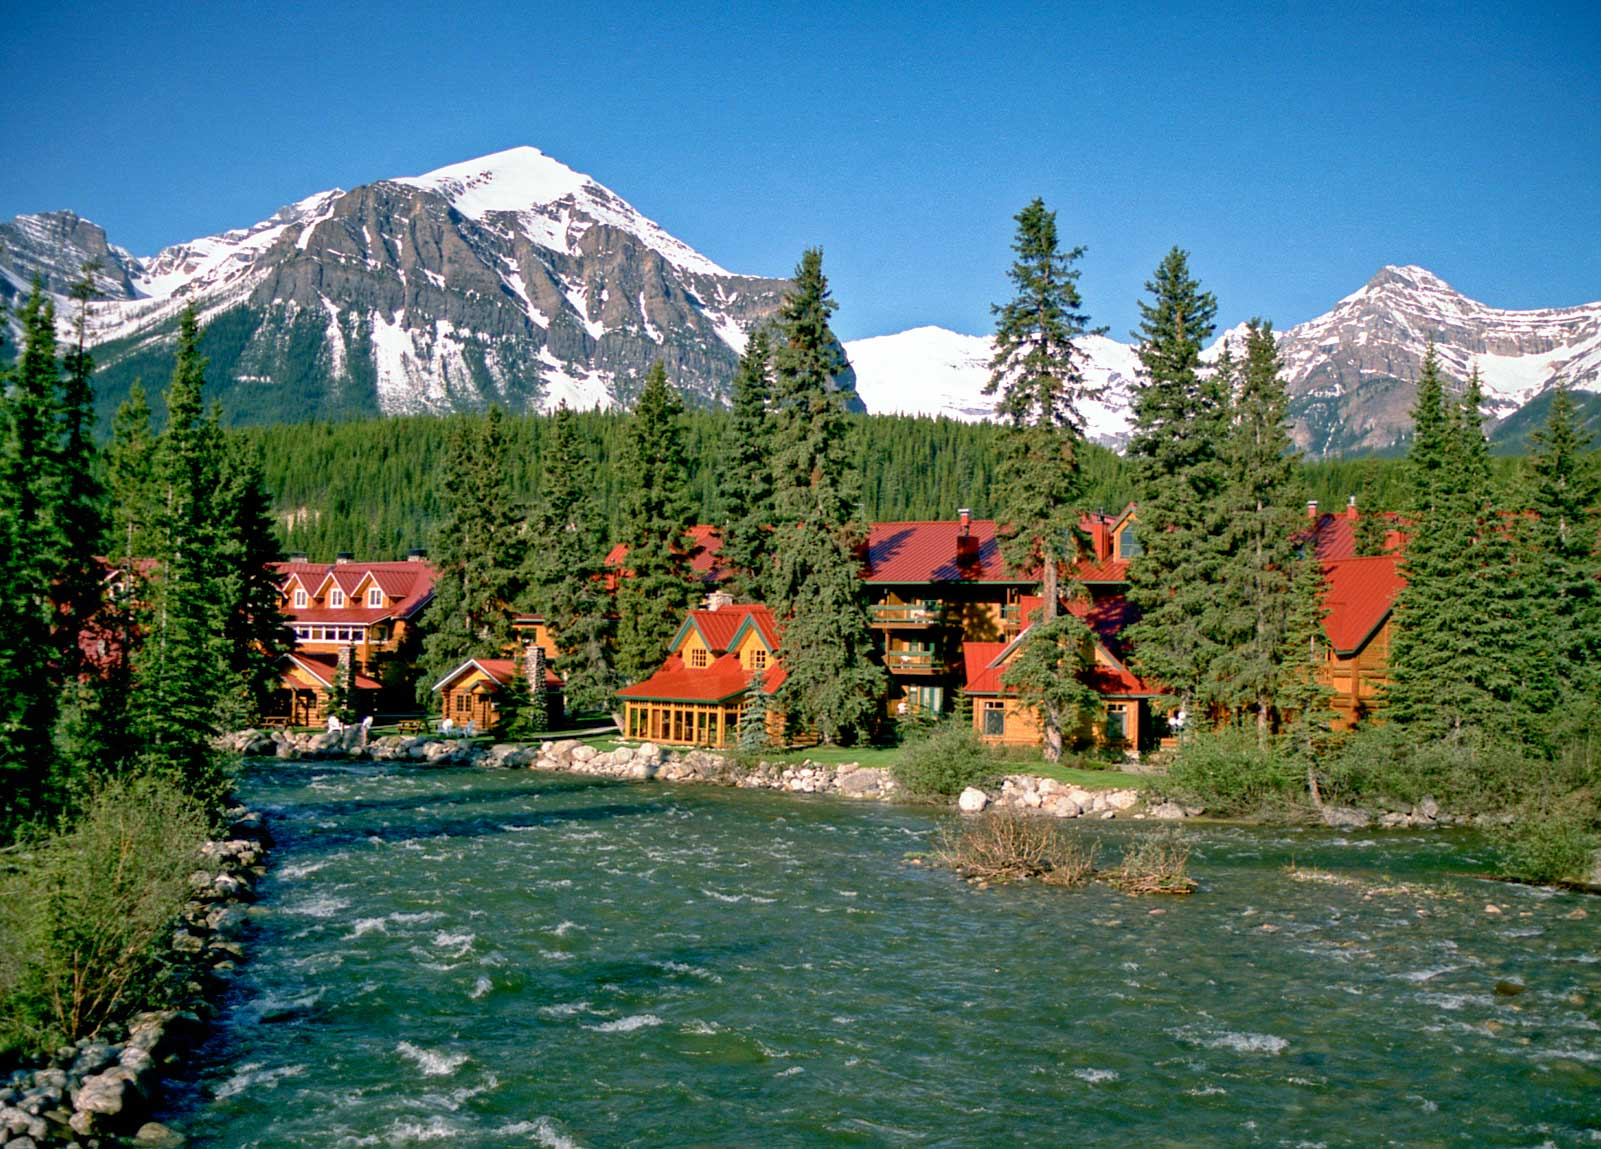 banff lodging map with Banff on Trail Map likewise British Columbia likewise Mountaineer Lodge together with Banff National Park Hotels d602291 together with Banff National Park Hotels Moraine Lake Lodge h183587.